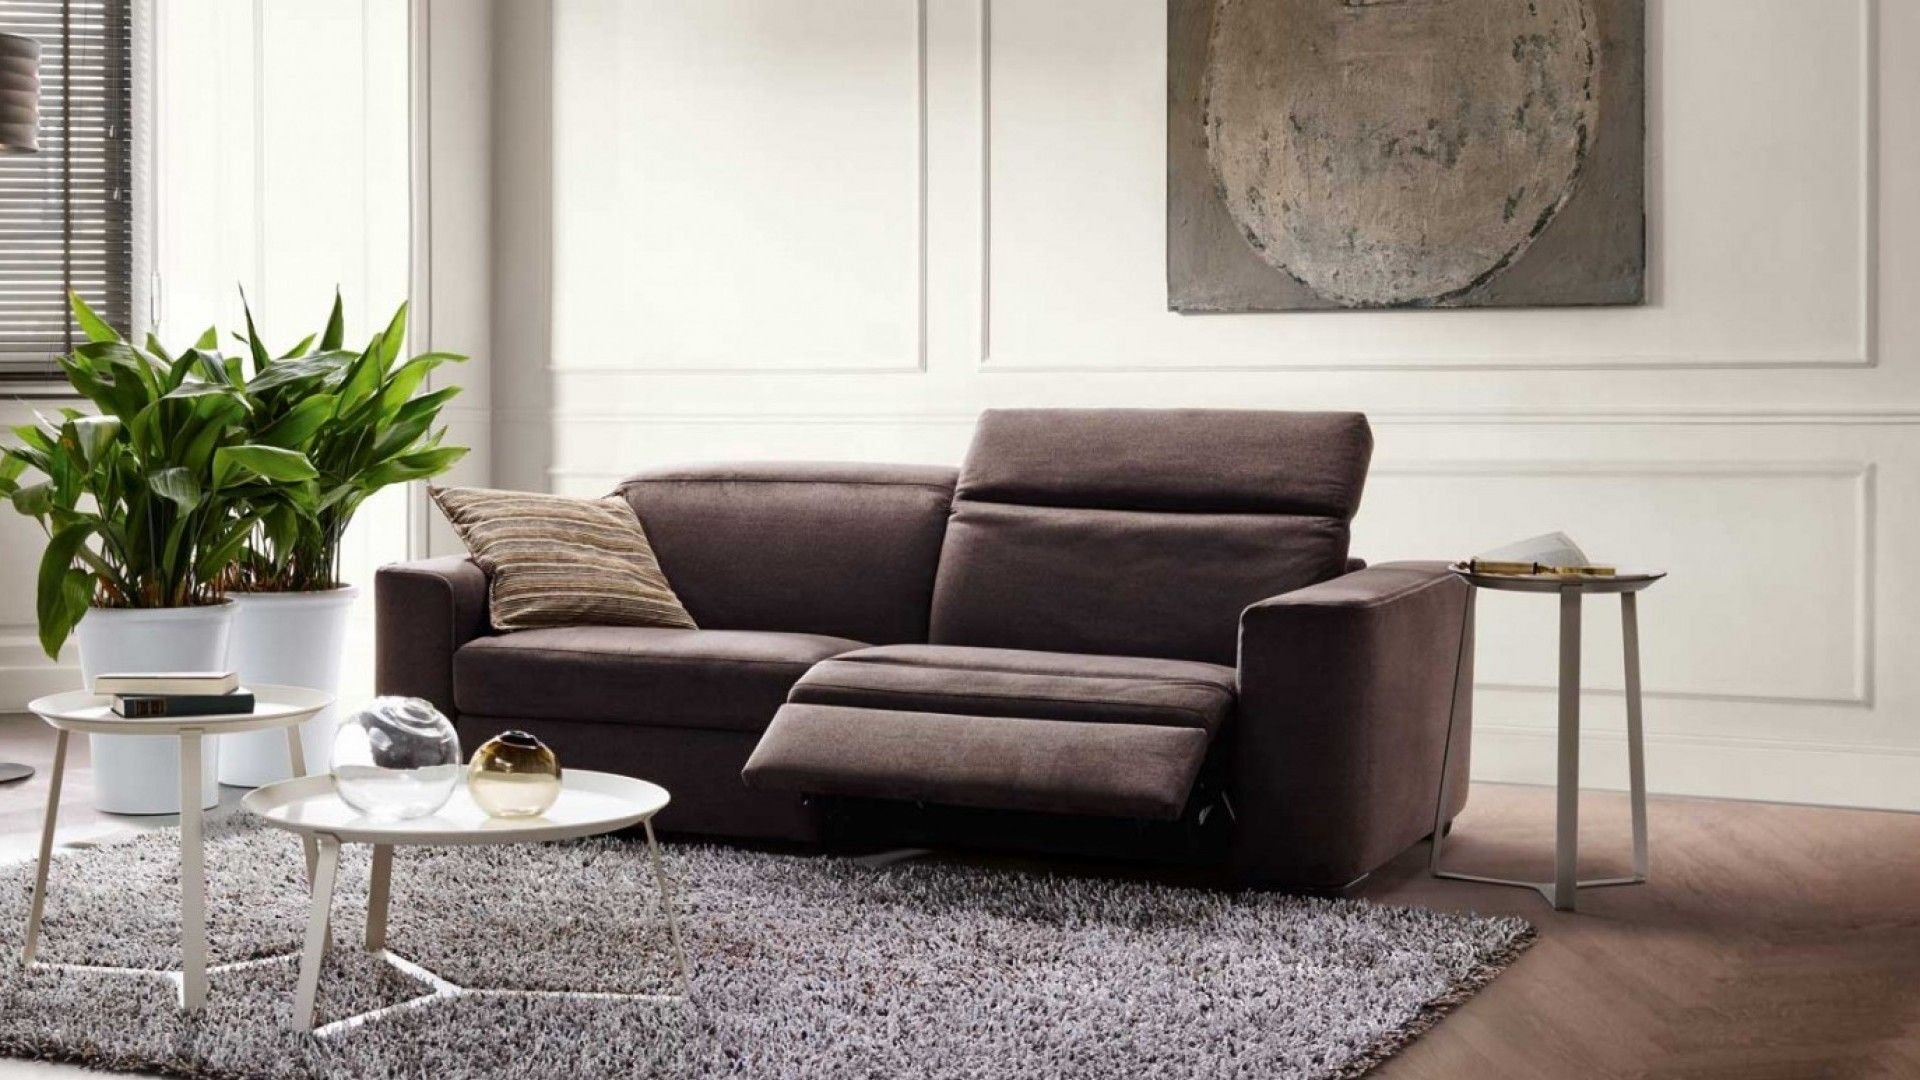 Diesis Natuzzi Oh for a beautiful sofa Pinterest